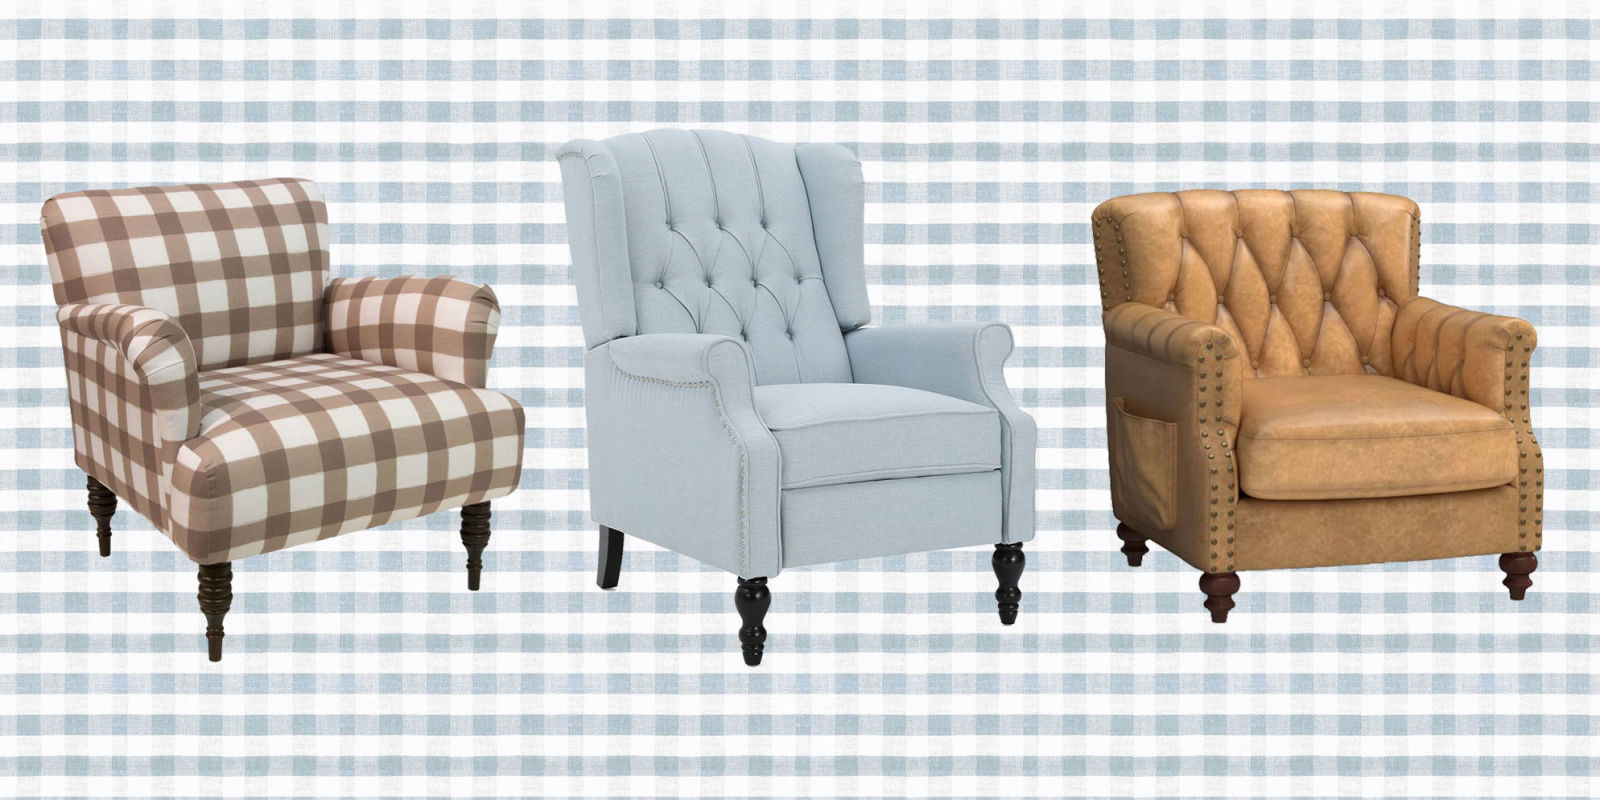 Best Reading Chair For Living Room: 10 Best Cozy Chairs For Living Rooms